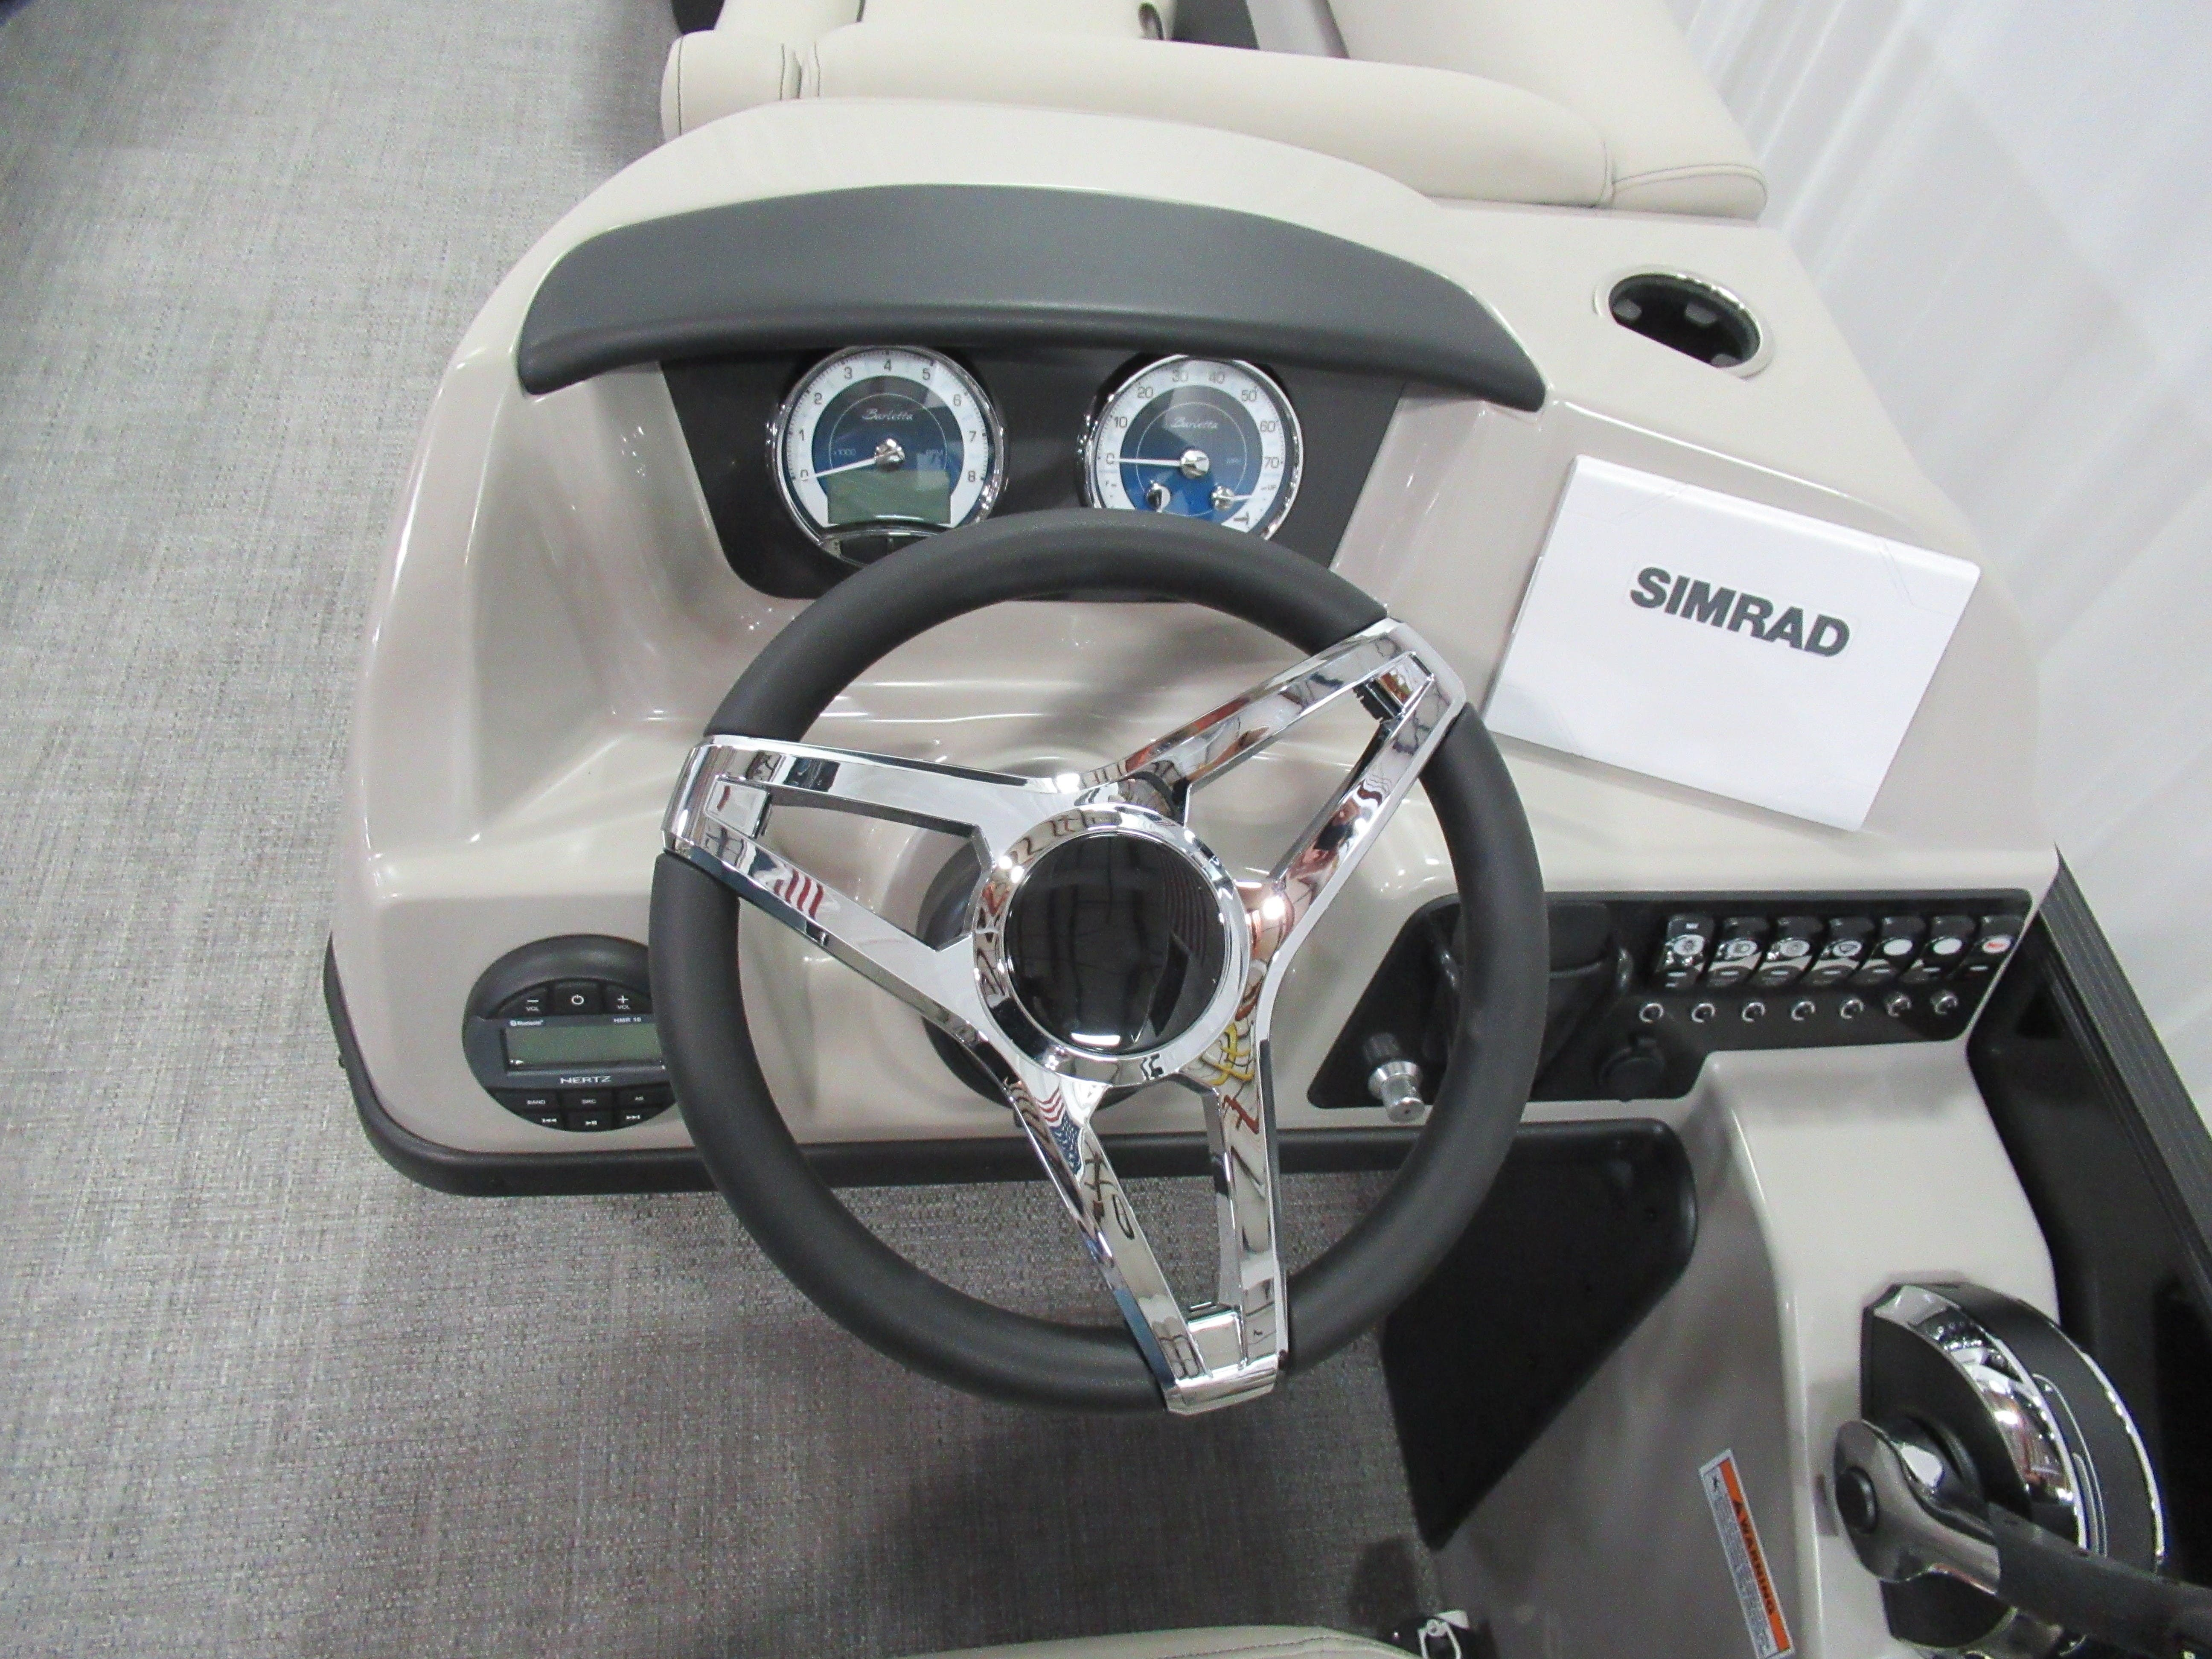 2021 Barletta boat for sale, model of the boat is C22qc & Image # 8 of 11